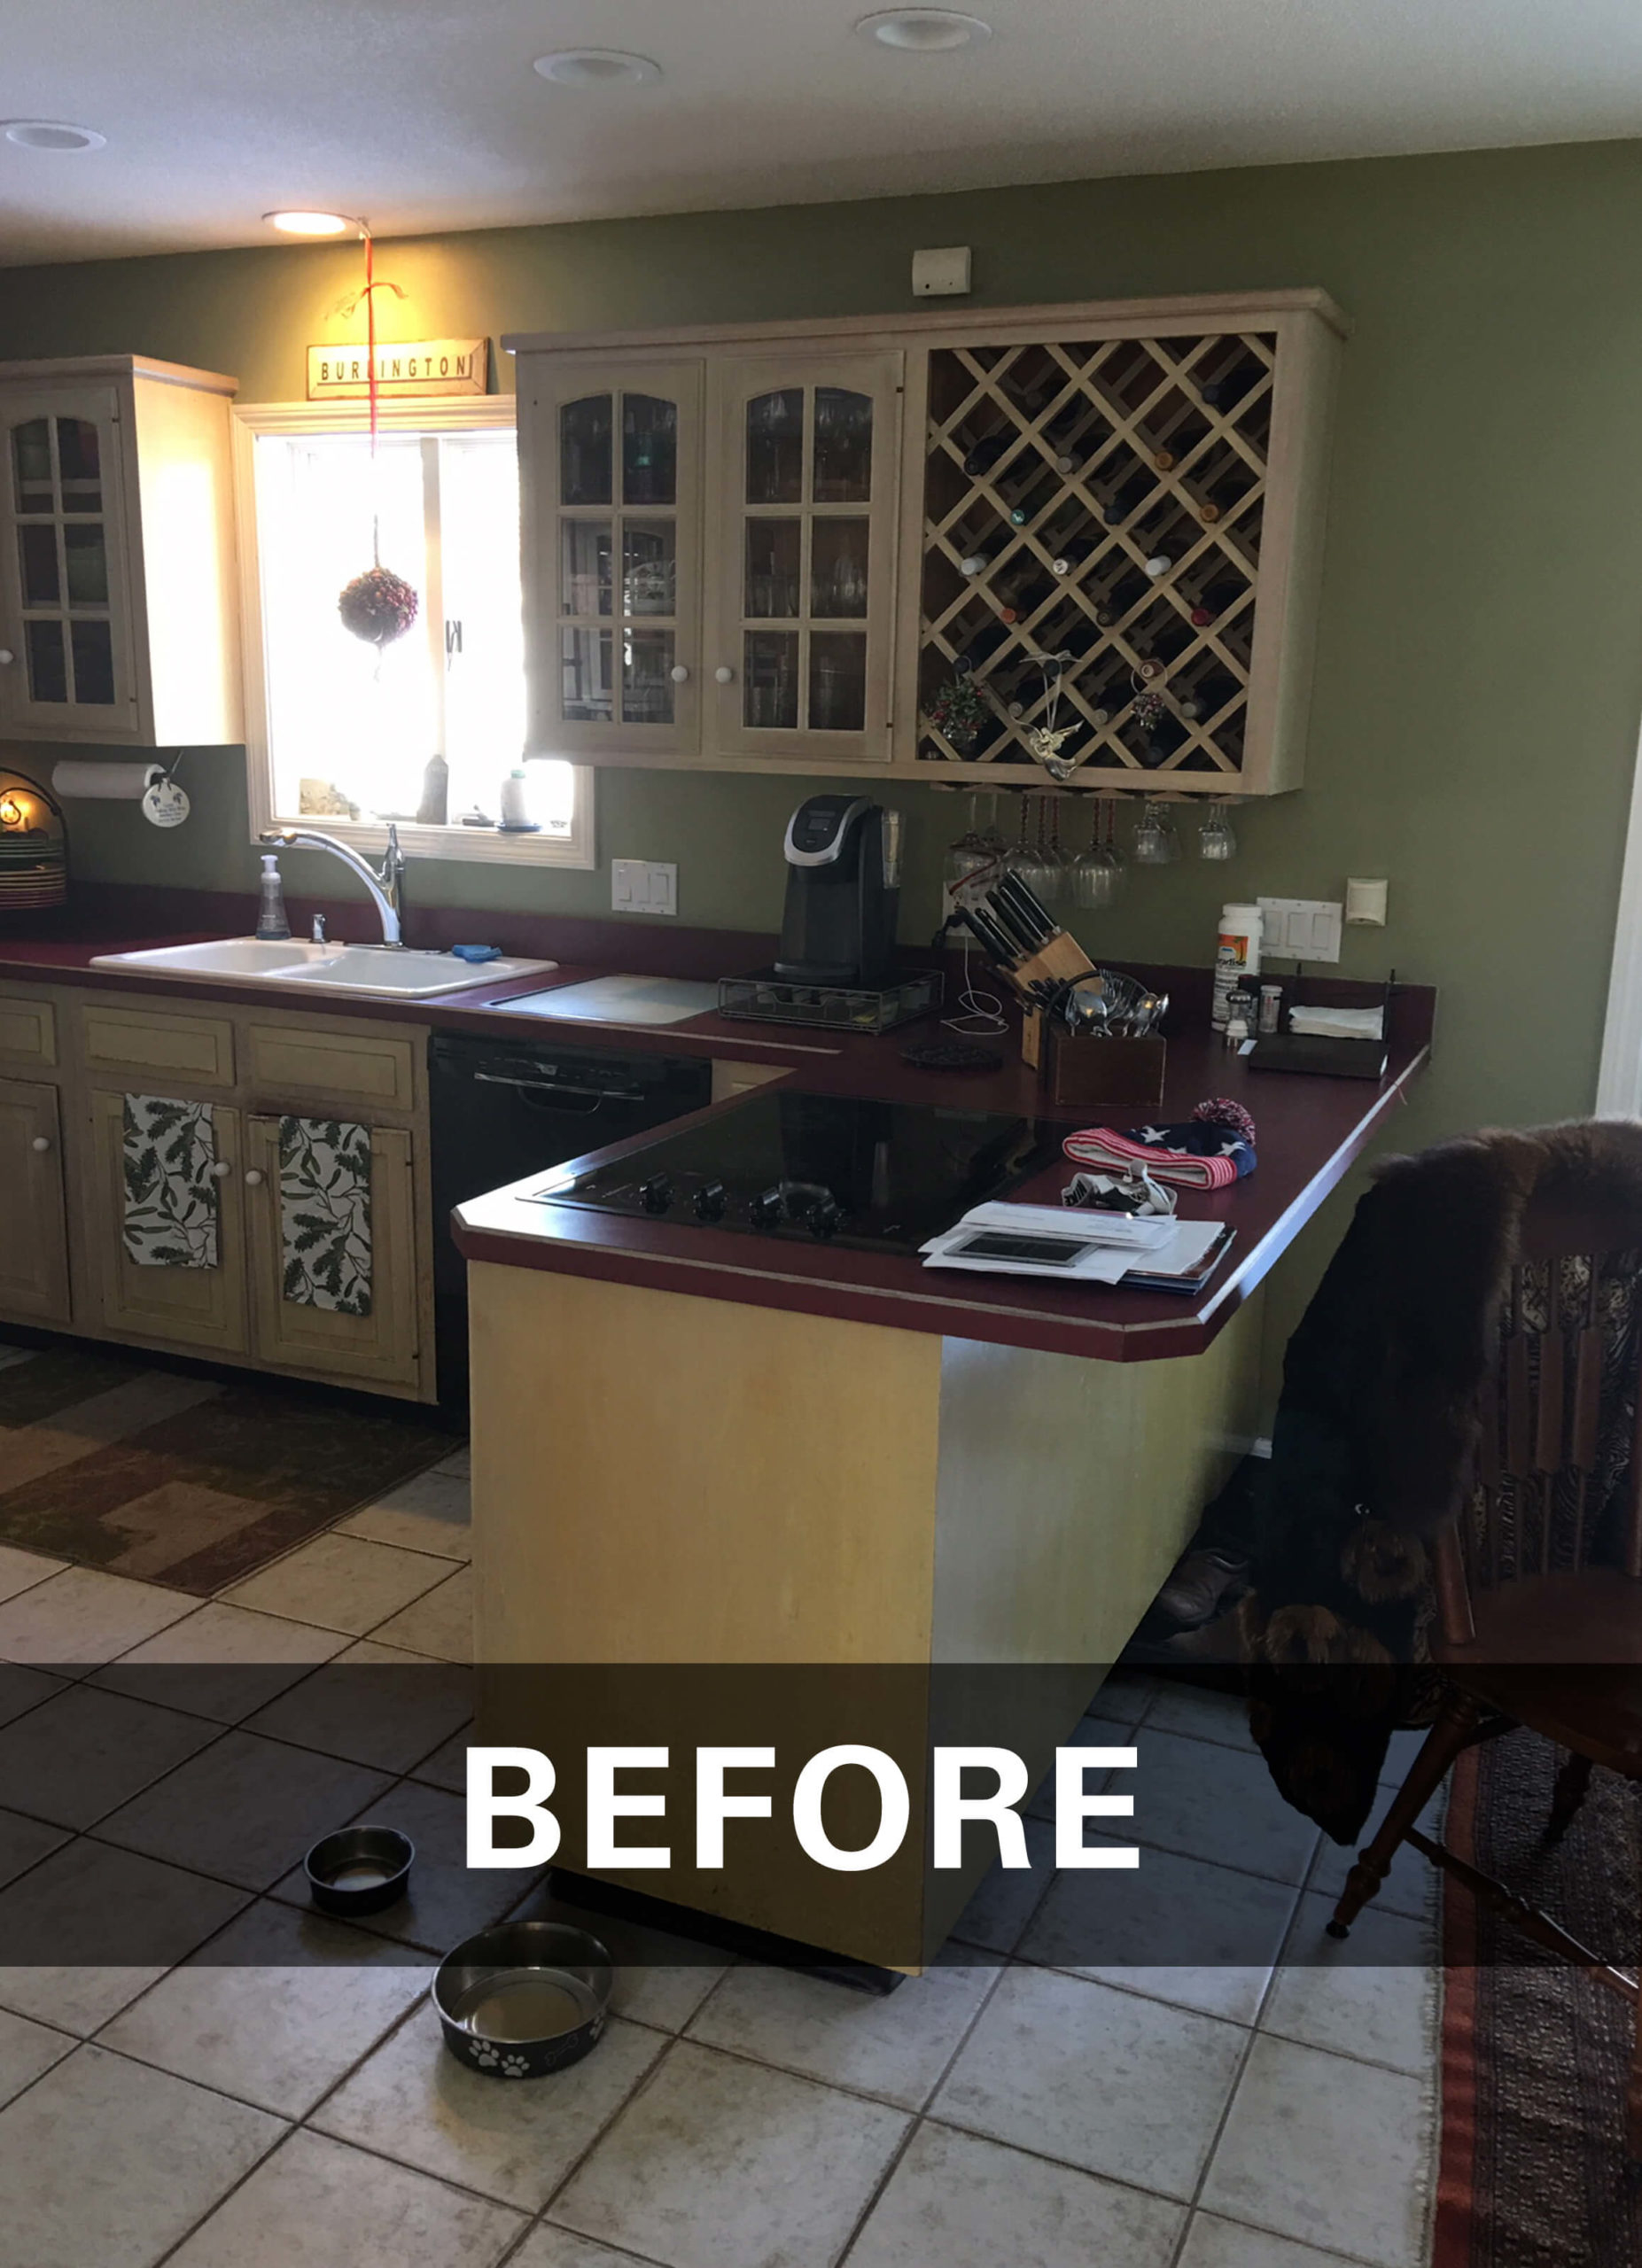 Burlington kitchen remodel before showing work surfaces and peninsula and original countertops.